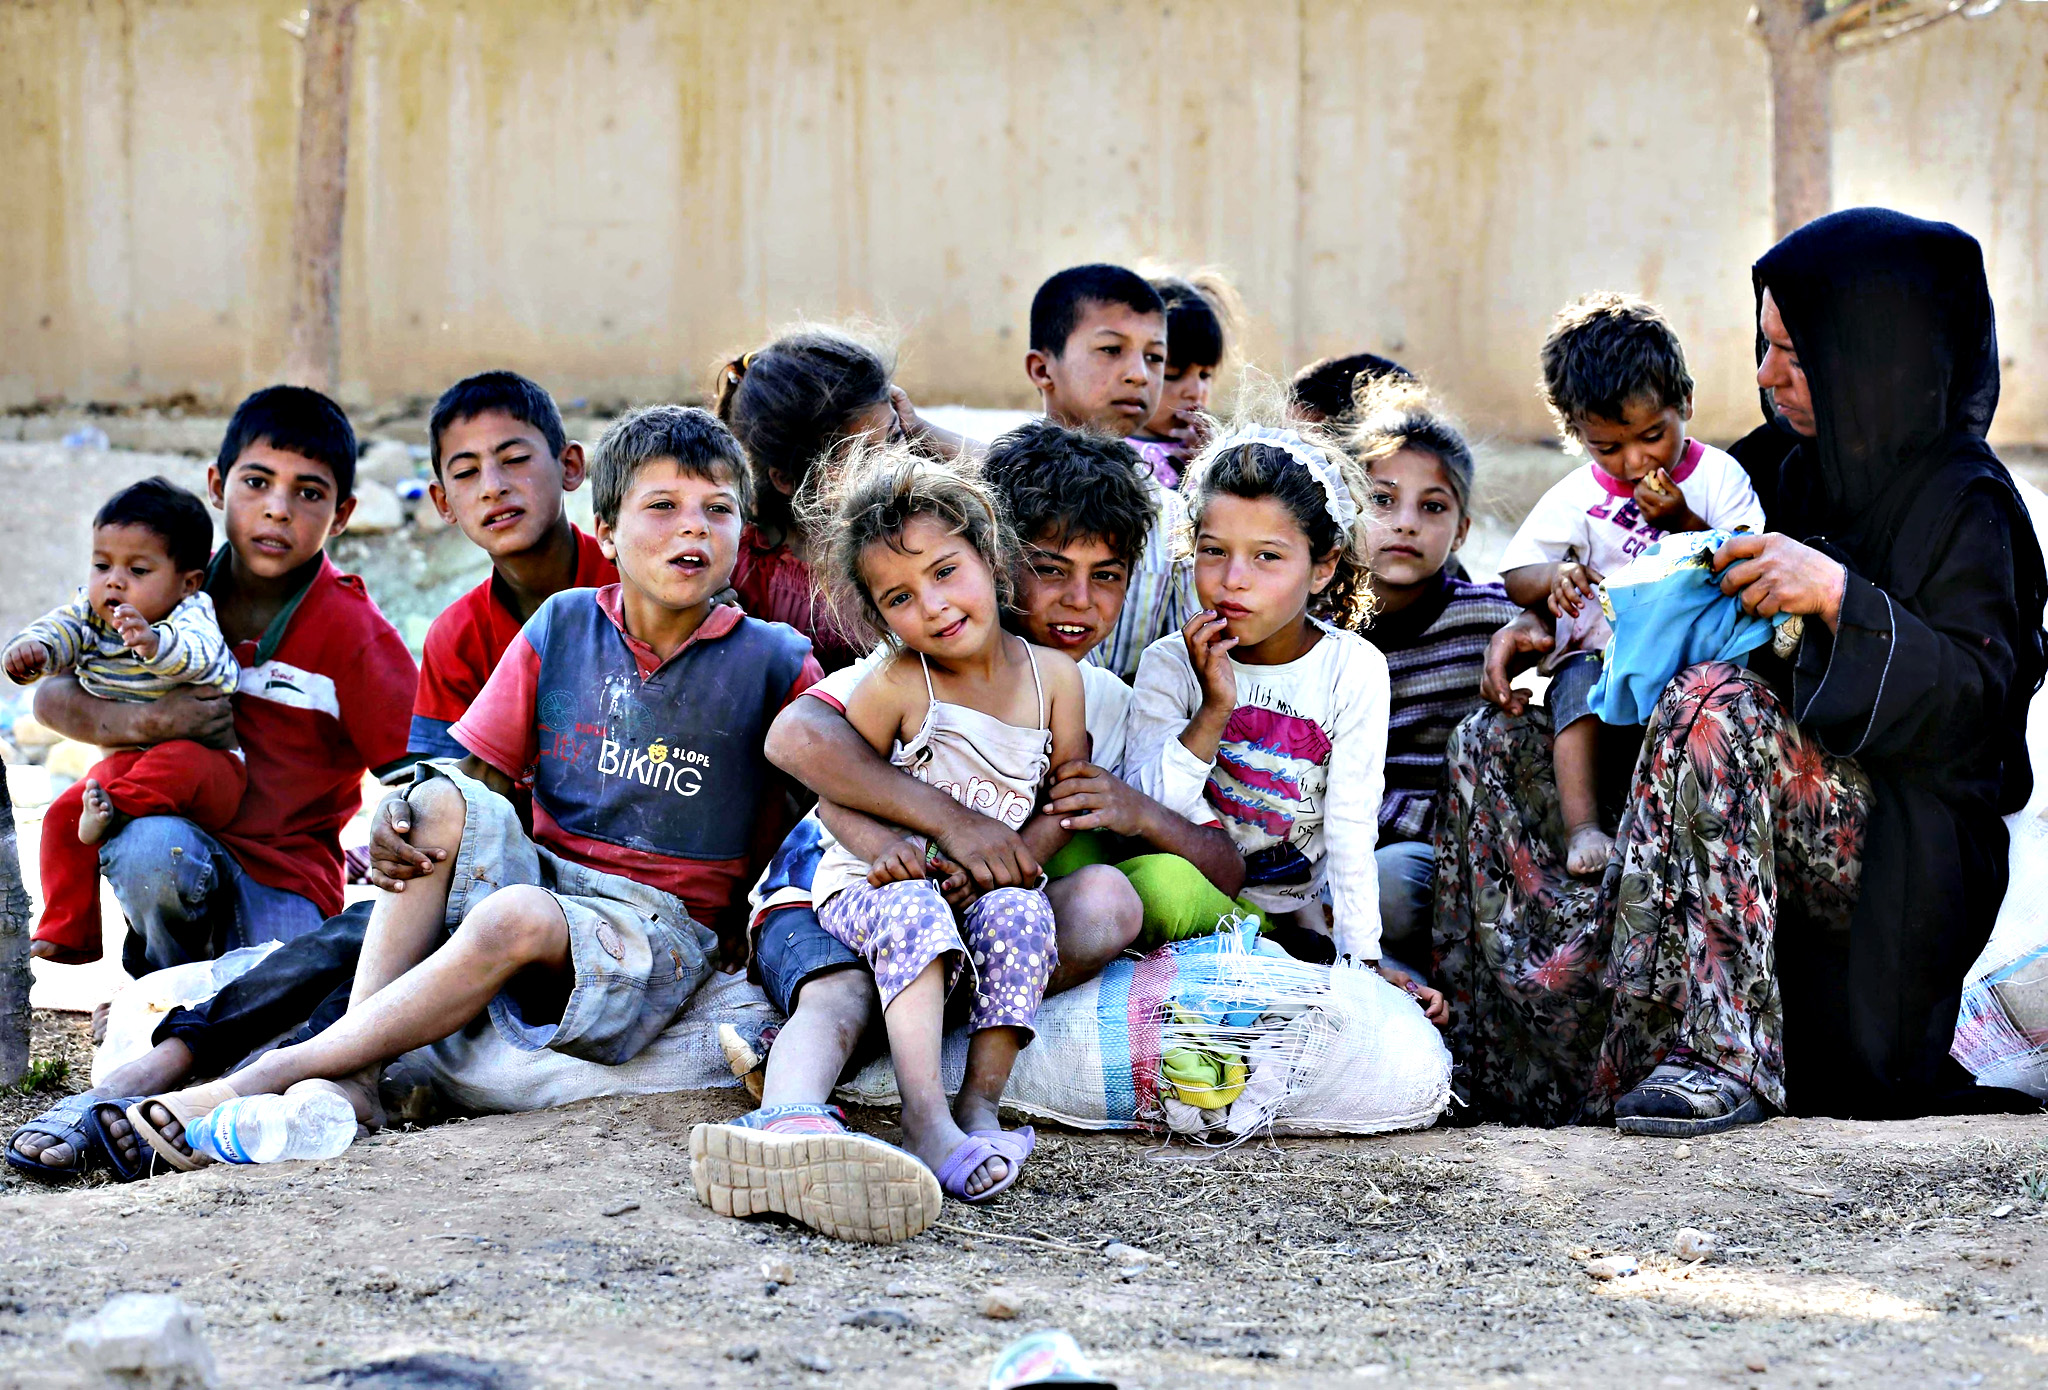 Syrian refugees take a rest at the Akcakale border gate after crossing into Turkey in Sanliurfa province, June 15, 2015. On Sunday, Turkish authorities reopened the border after a few days of closure, a security source said, adding that they expected as many as 10,000 people to come across.